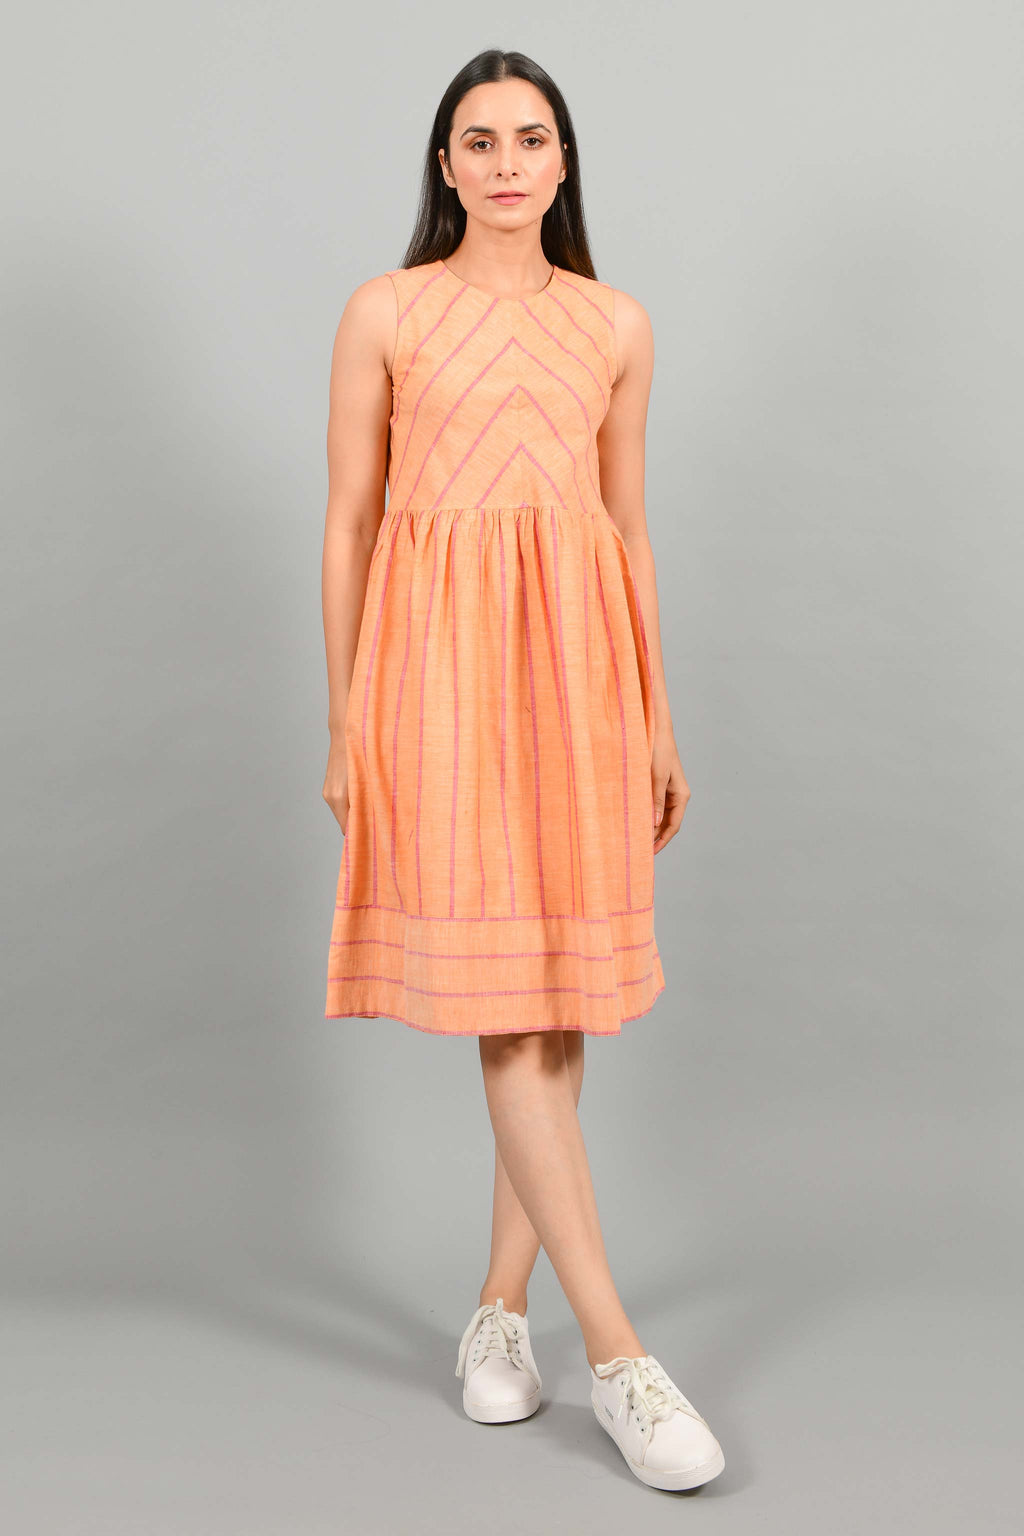 Front pose of an Indian female womenswear fashion model in a orange chambray handspun and handwoven khadi cotton with red stripes by Cotton Rack. The dress has gathers at waist. and the stripes are arranged in attractive manner.